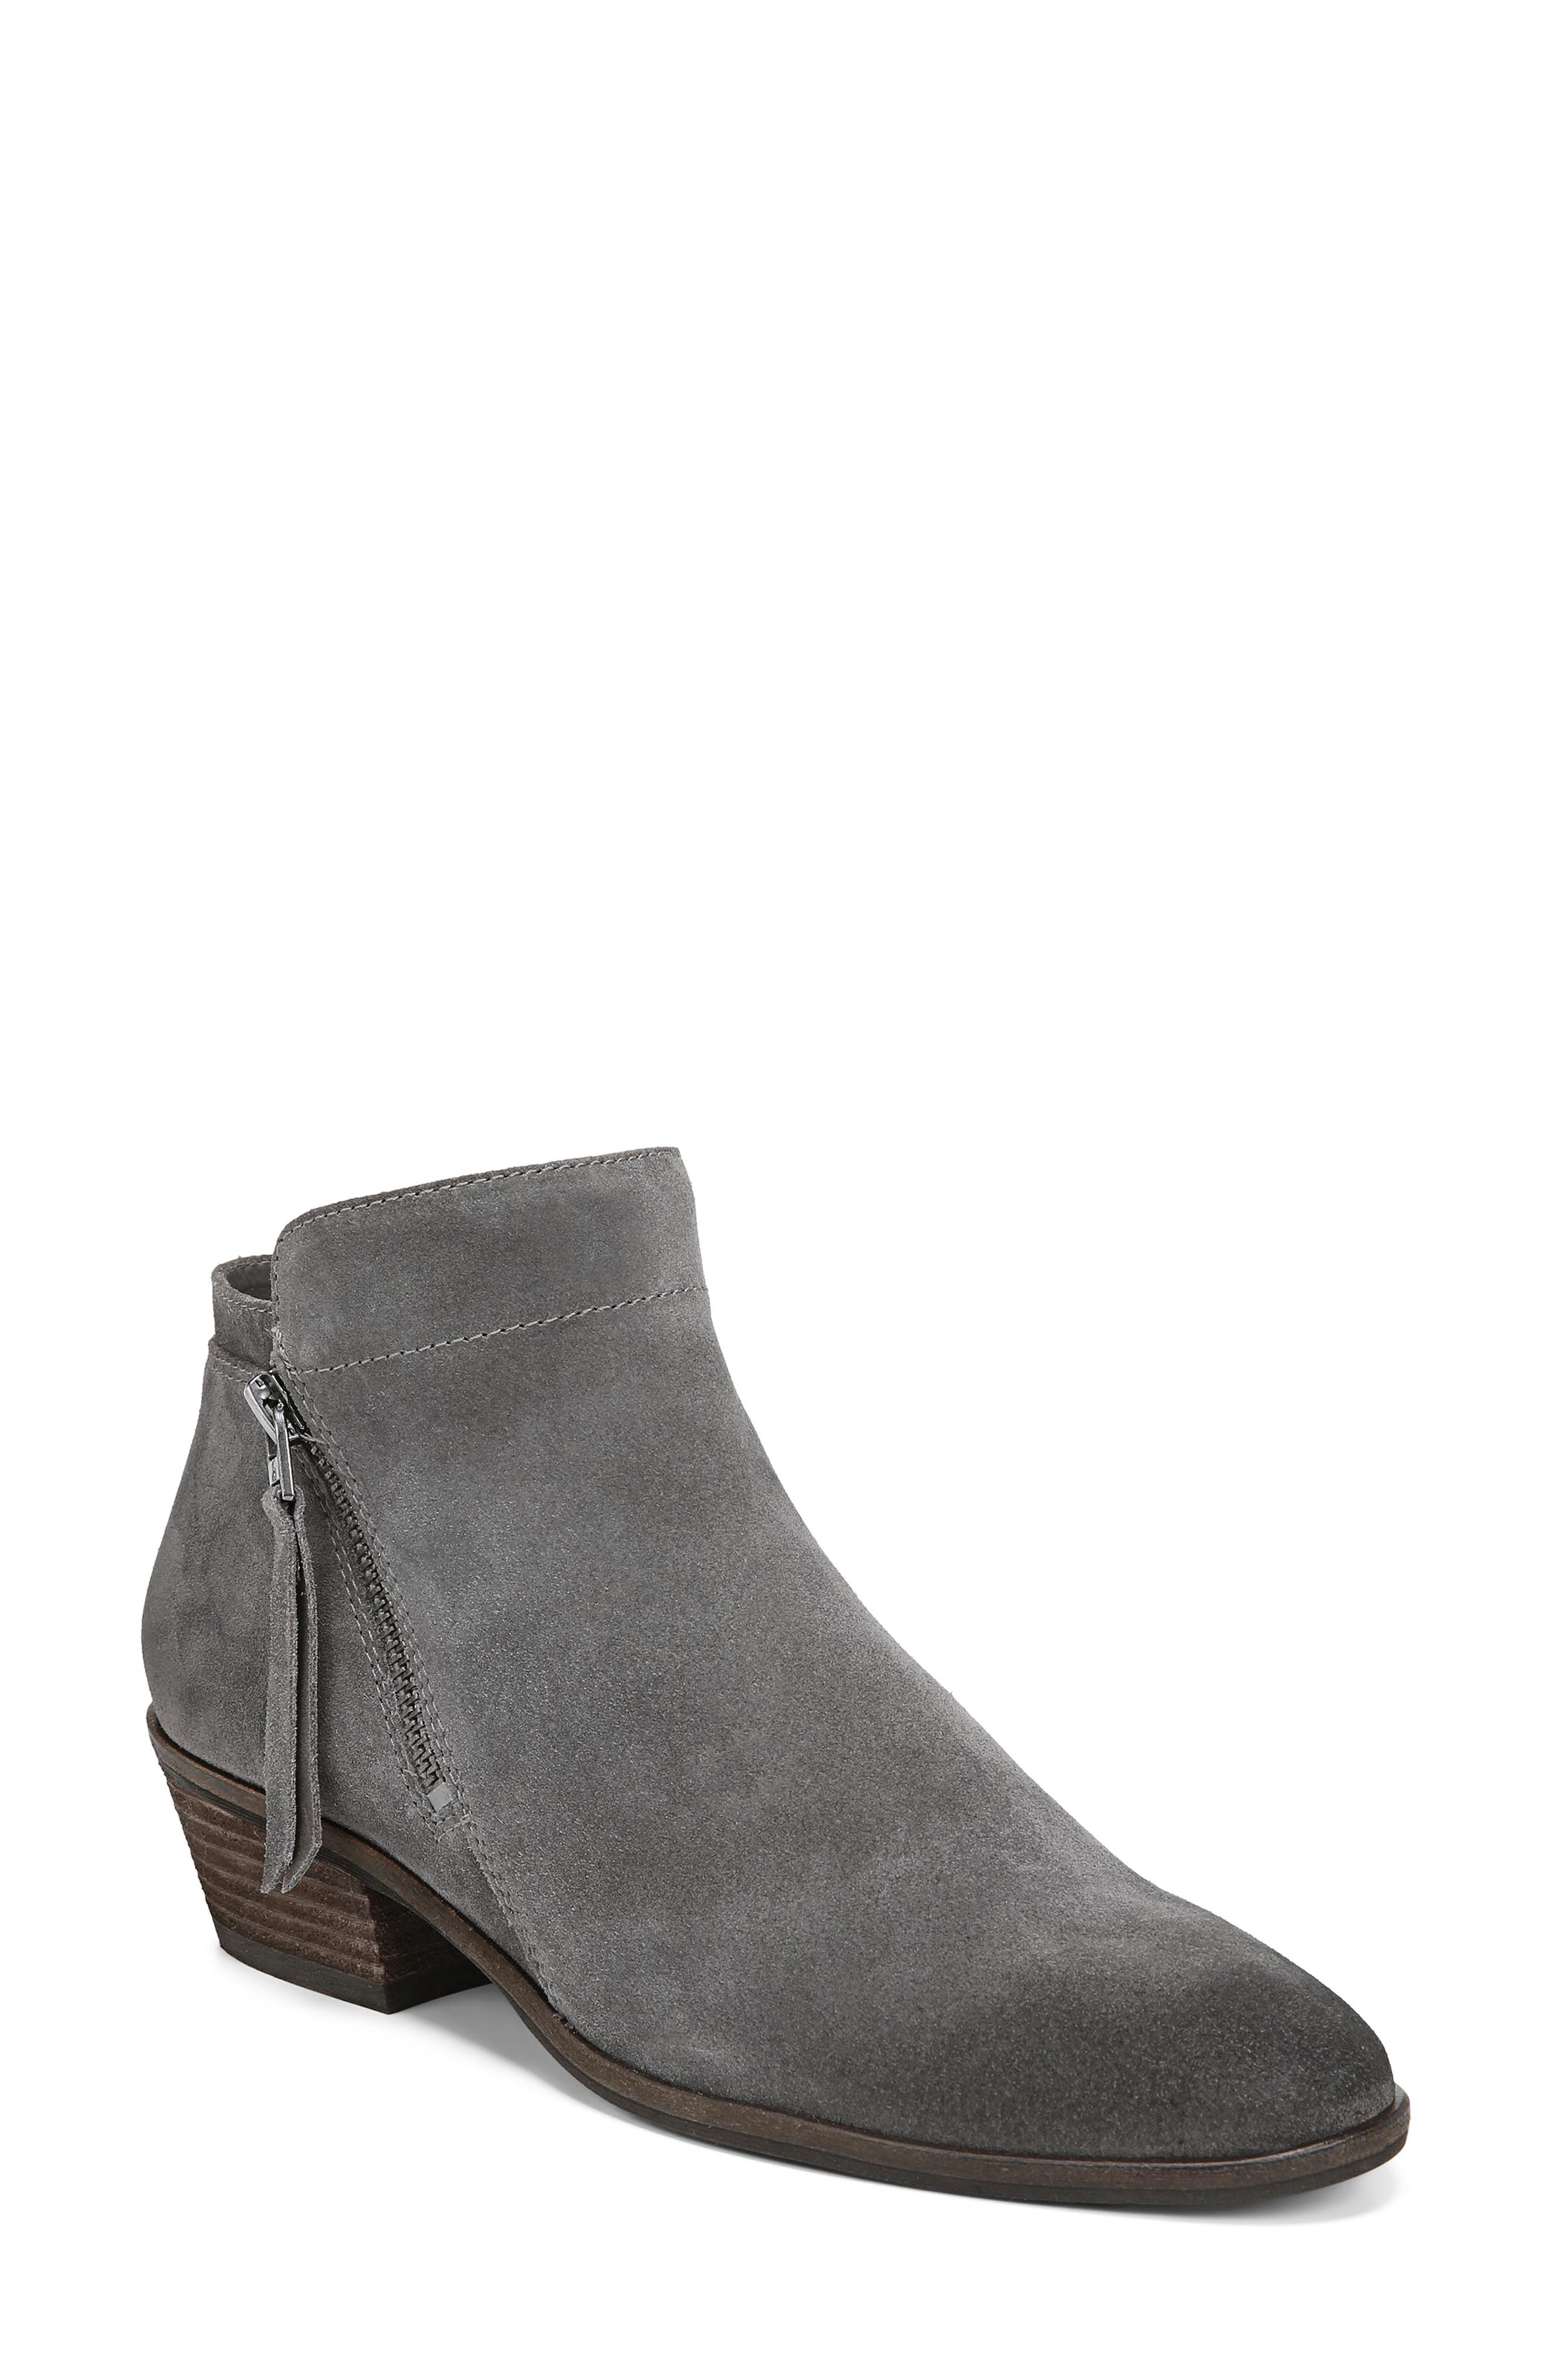 Packer Bootie,                         Main,                         color, STEEL GREY SUEDE LEATHER